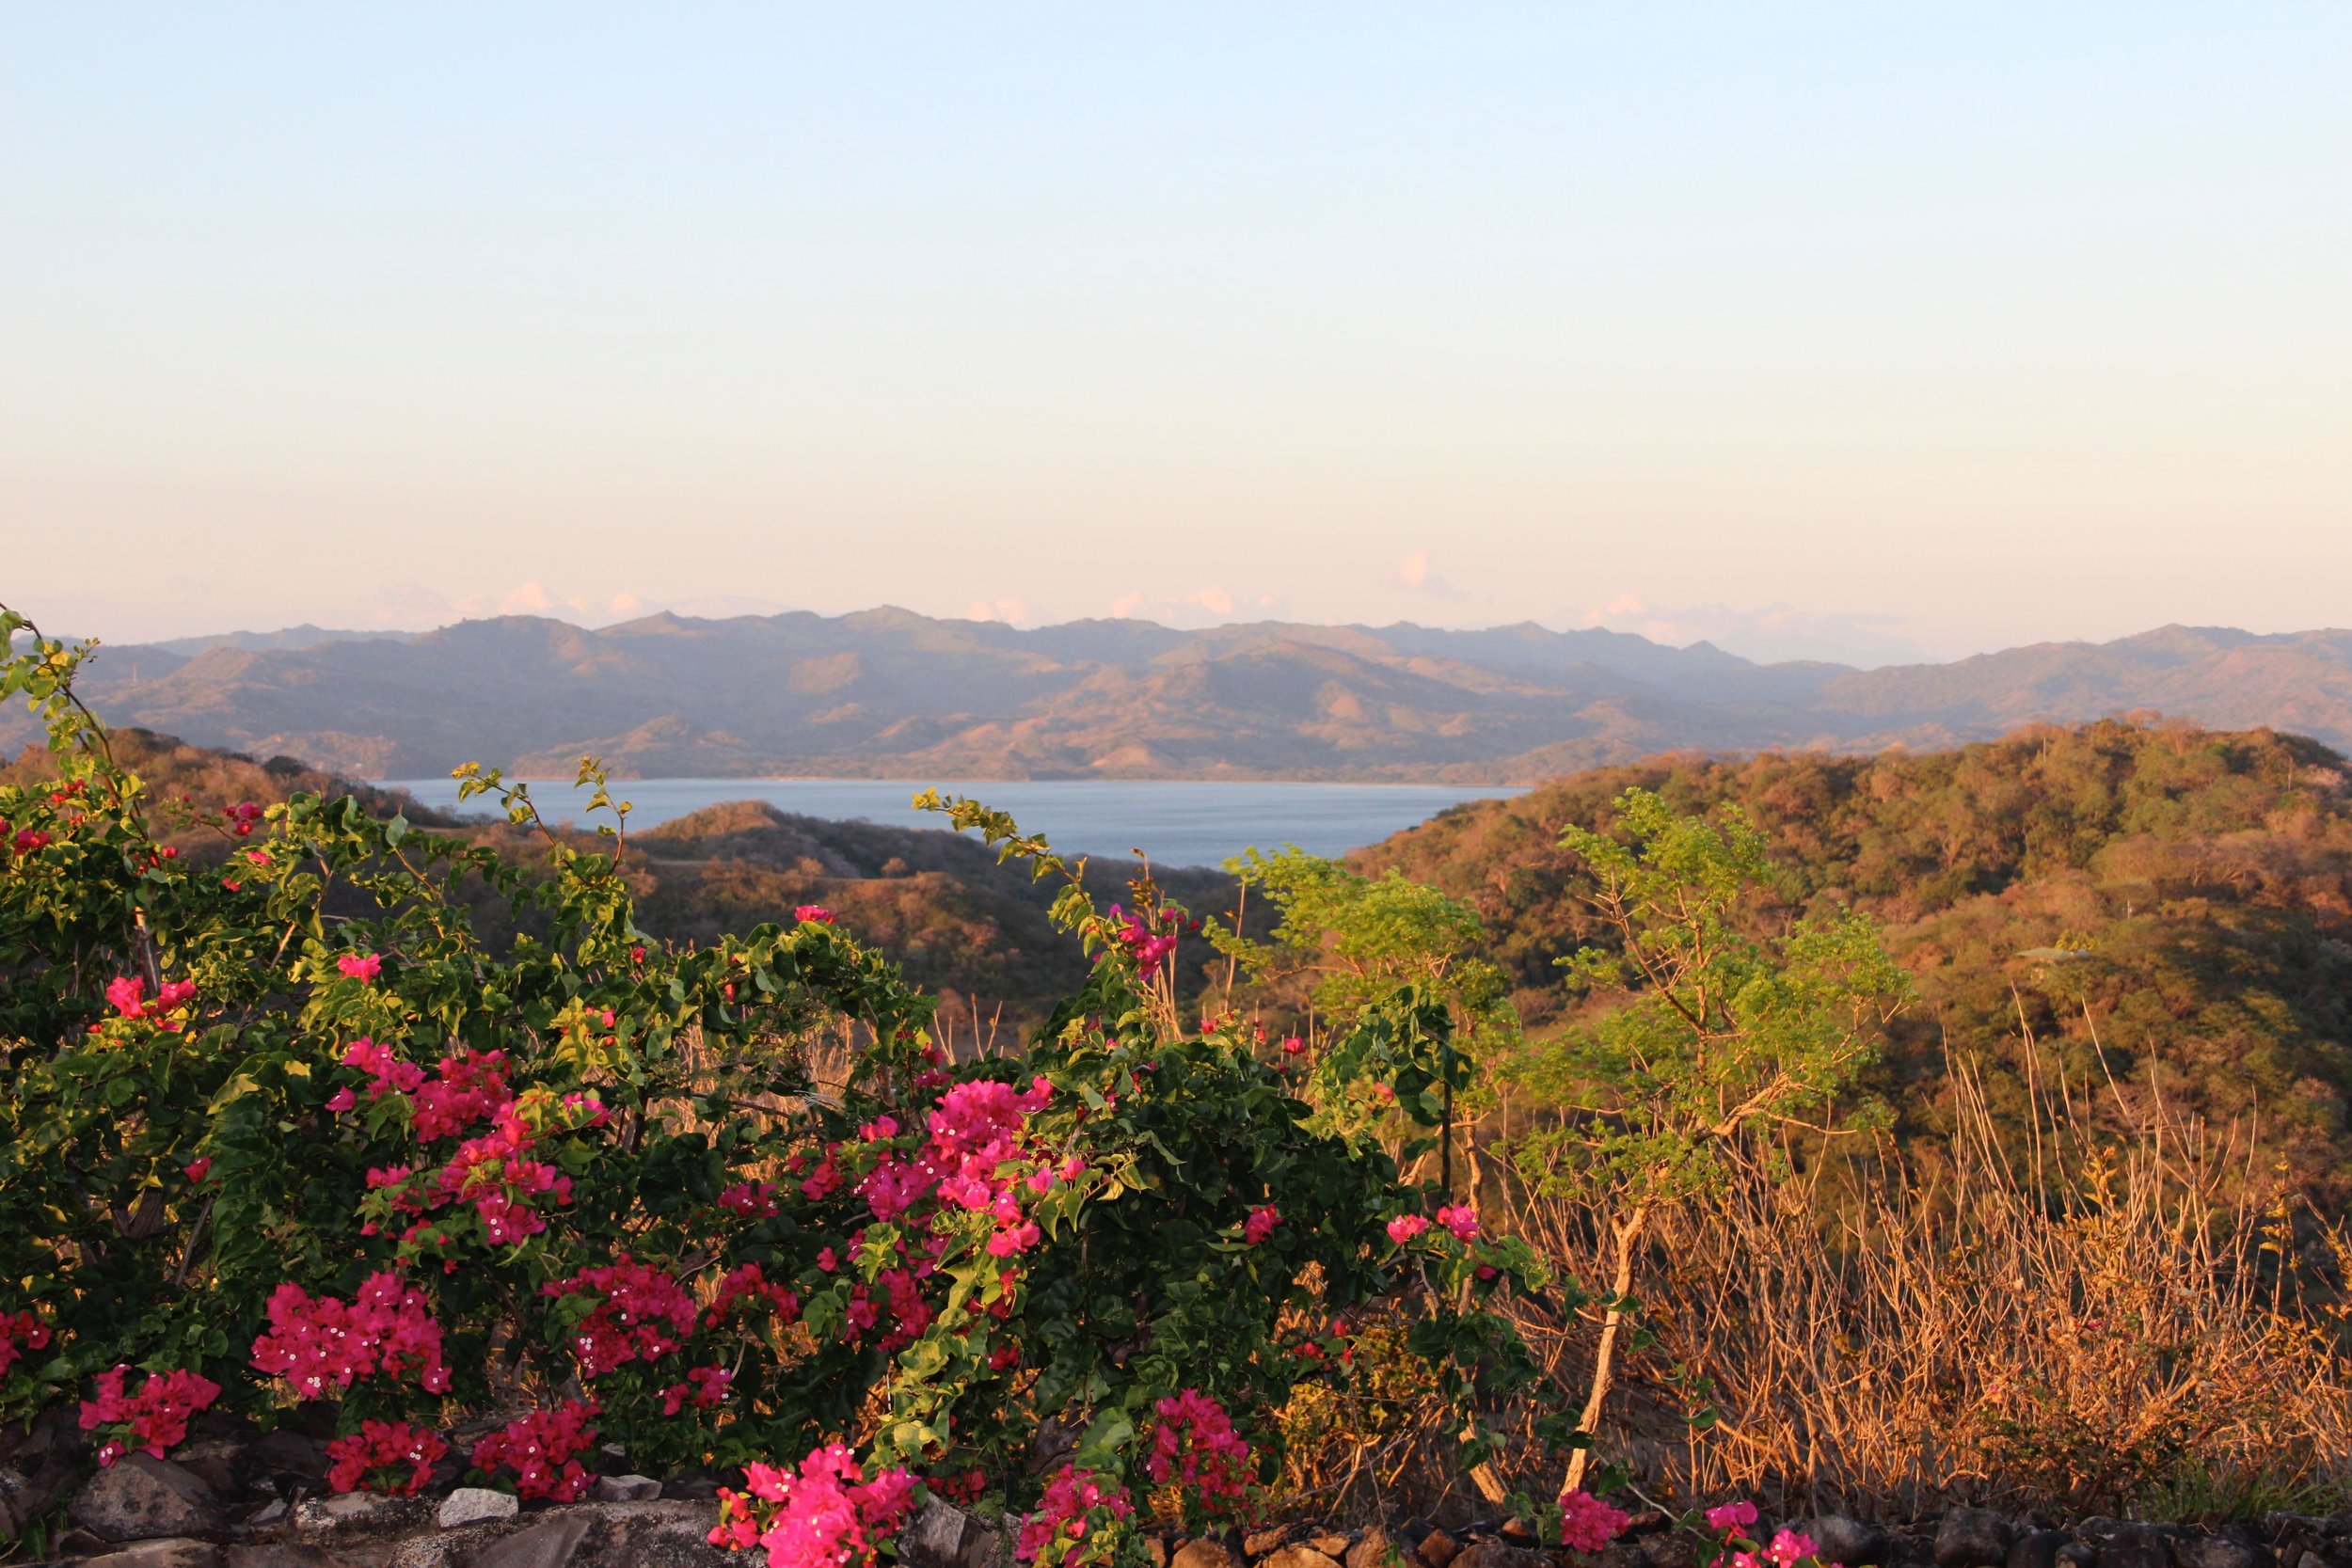 Looking North East over Baja Salinas towards Nicaragua where the guys kited every day - yup lots of bougainvillaea